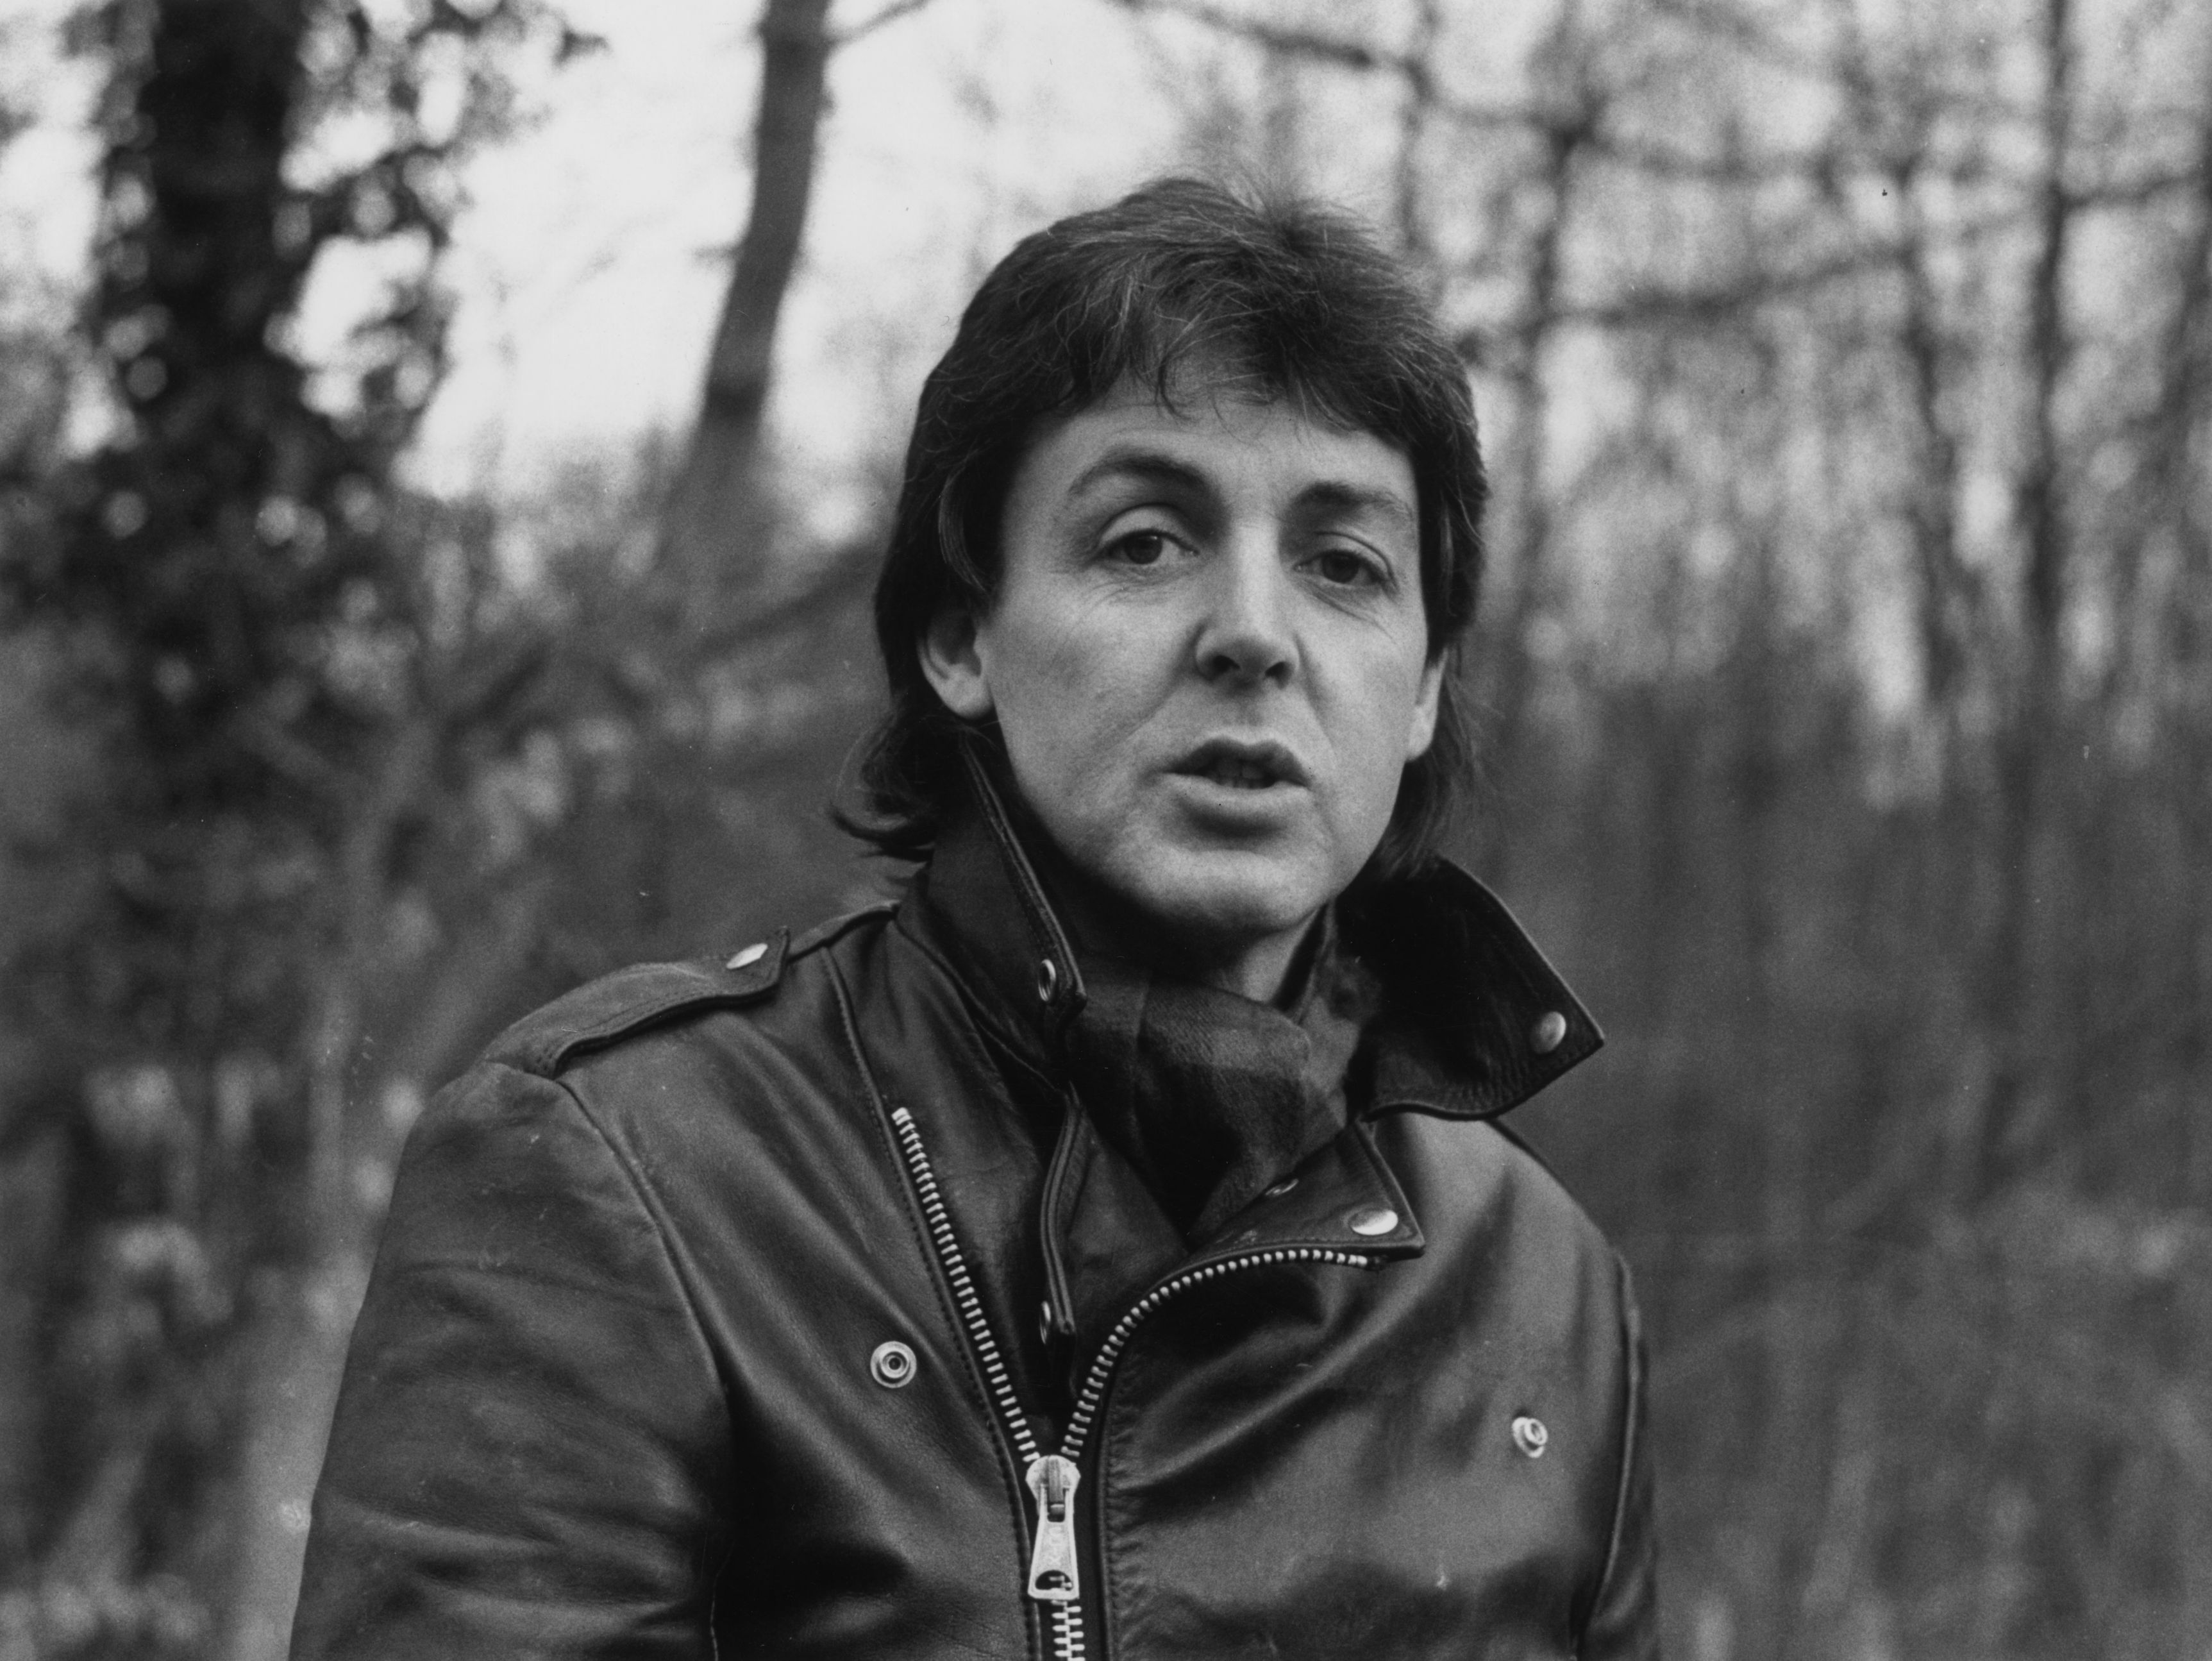 Paul McCartney pictured on his farm near Rye, Sussex. 1980. | Photo: Getty Images